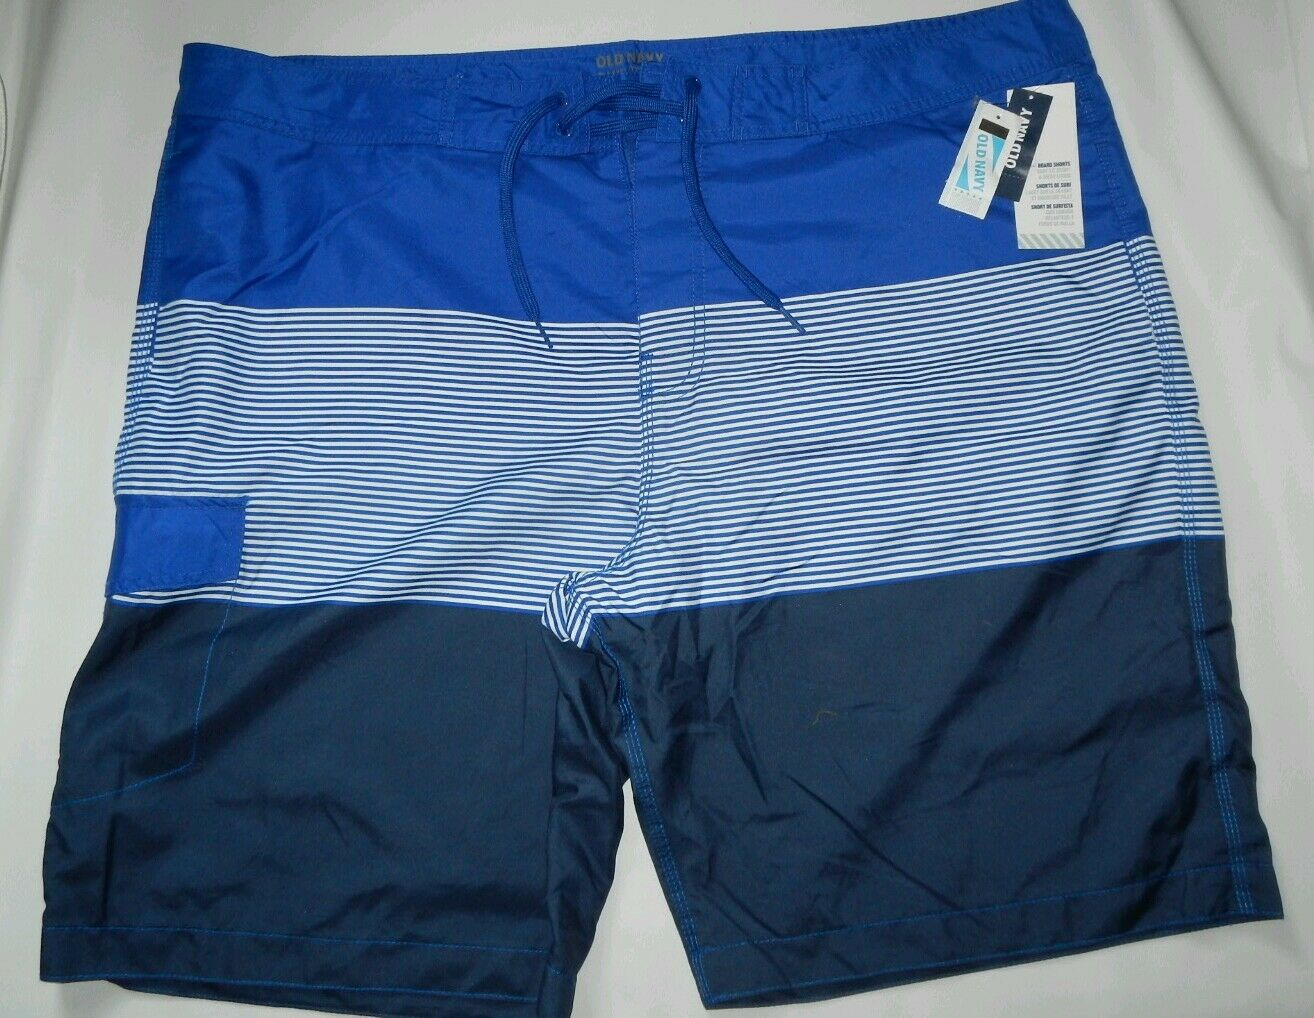 OLD NAVY MENS BOARD SHORTS blueE SIZE XXL XXXL BIG MENS STRIPED NETTED (A11)